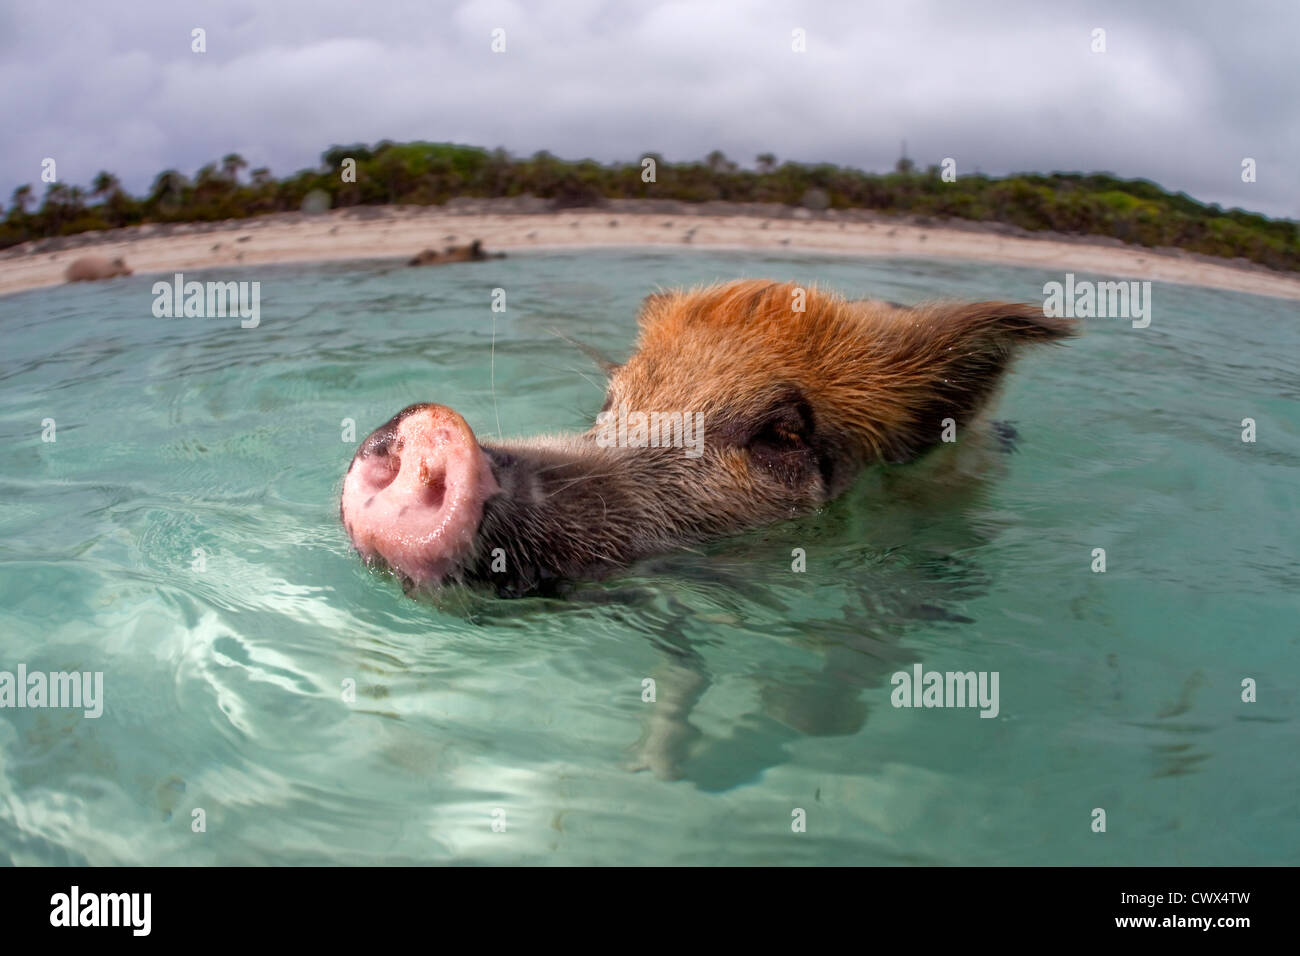 A wild pig swims up to a boat full of tourists at Staniel Cay in the Bahamas. Stock Foto